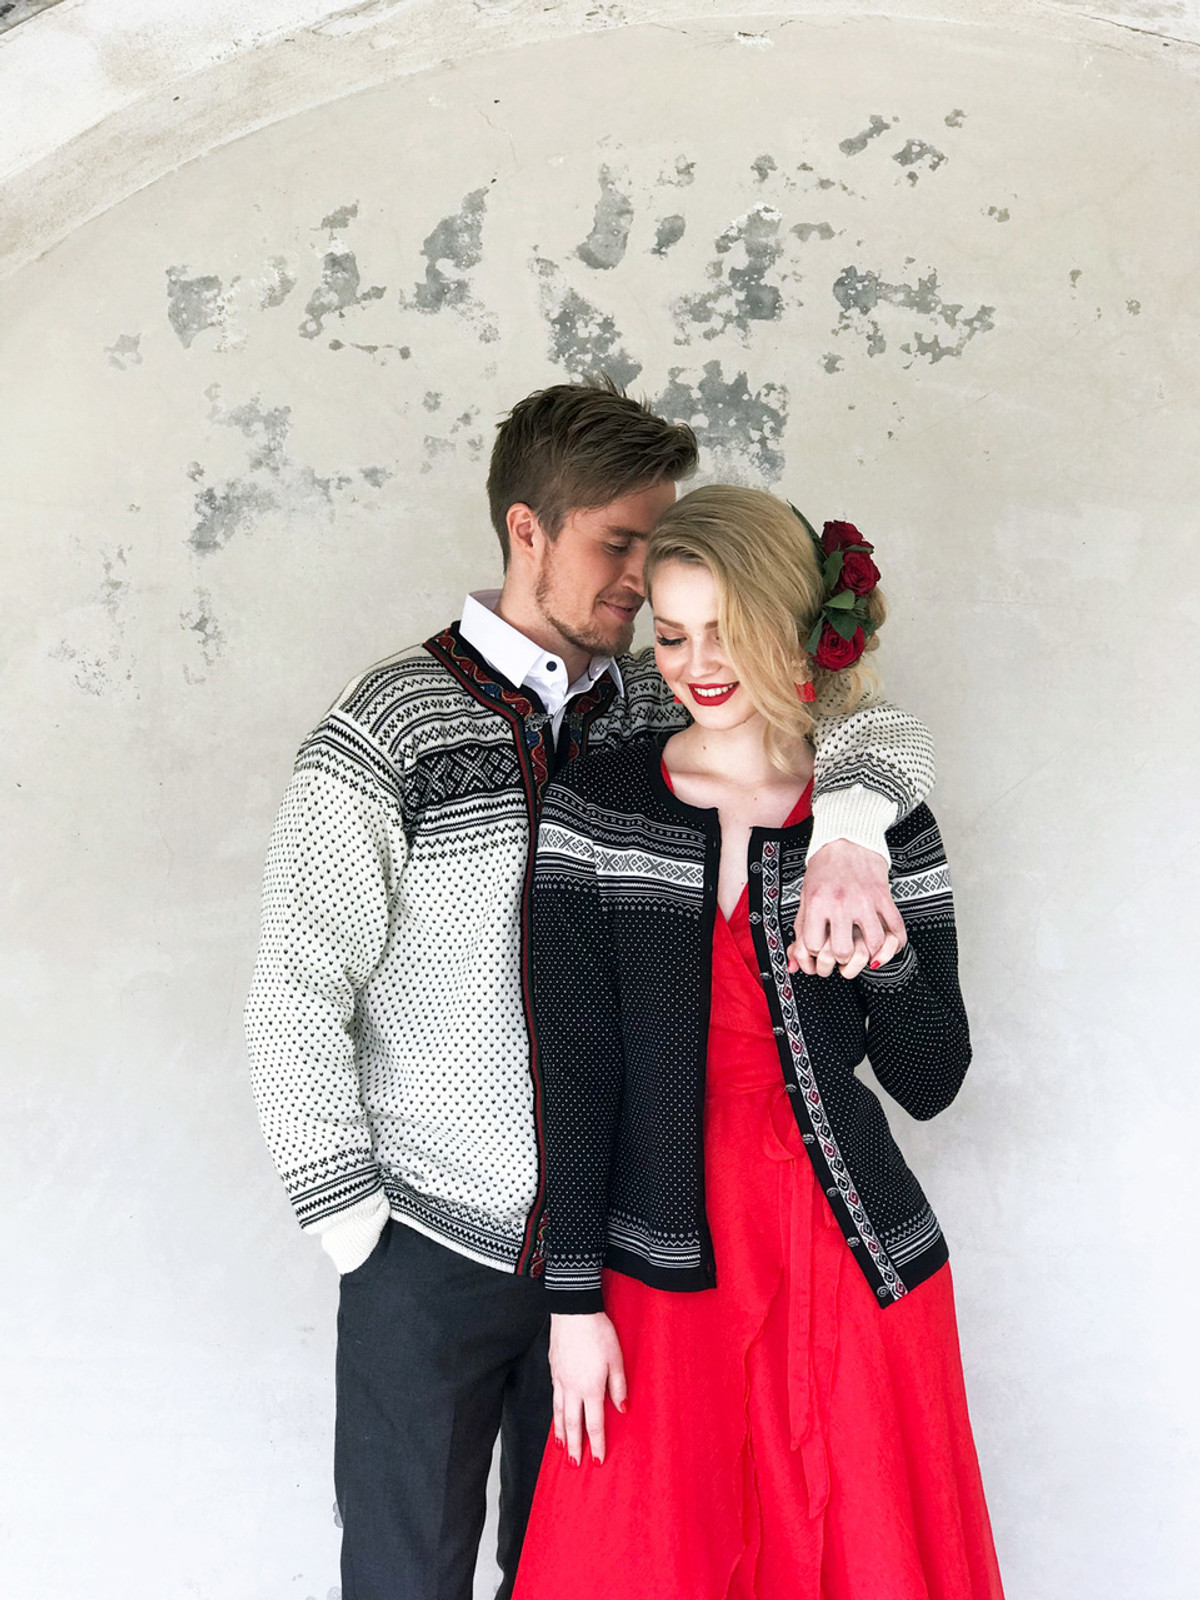 Man and woman wearing Dale of Norway new unisex Setesdal cardigan in Off White/Black, 83291-A, and Hedda Ladies Cardigan in Black/Off White/Ruby Mel, 83401-F